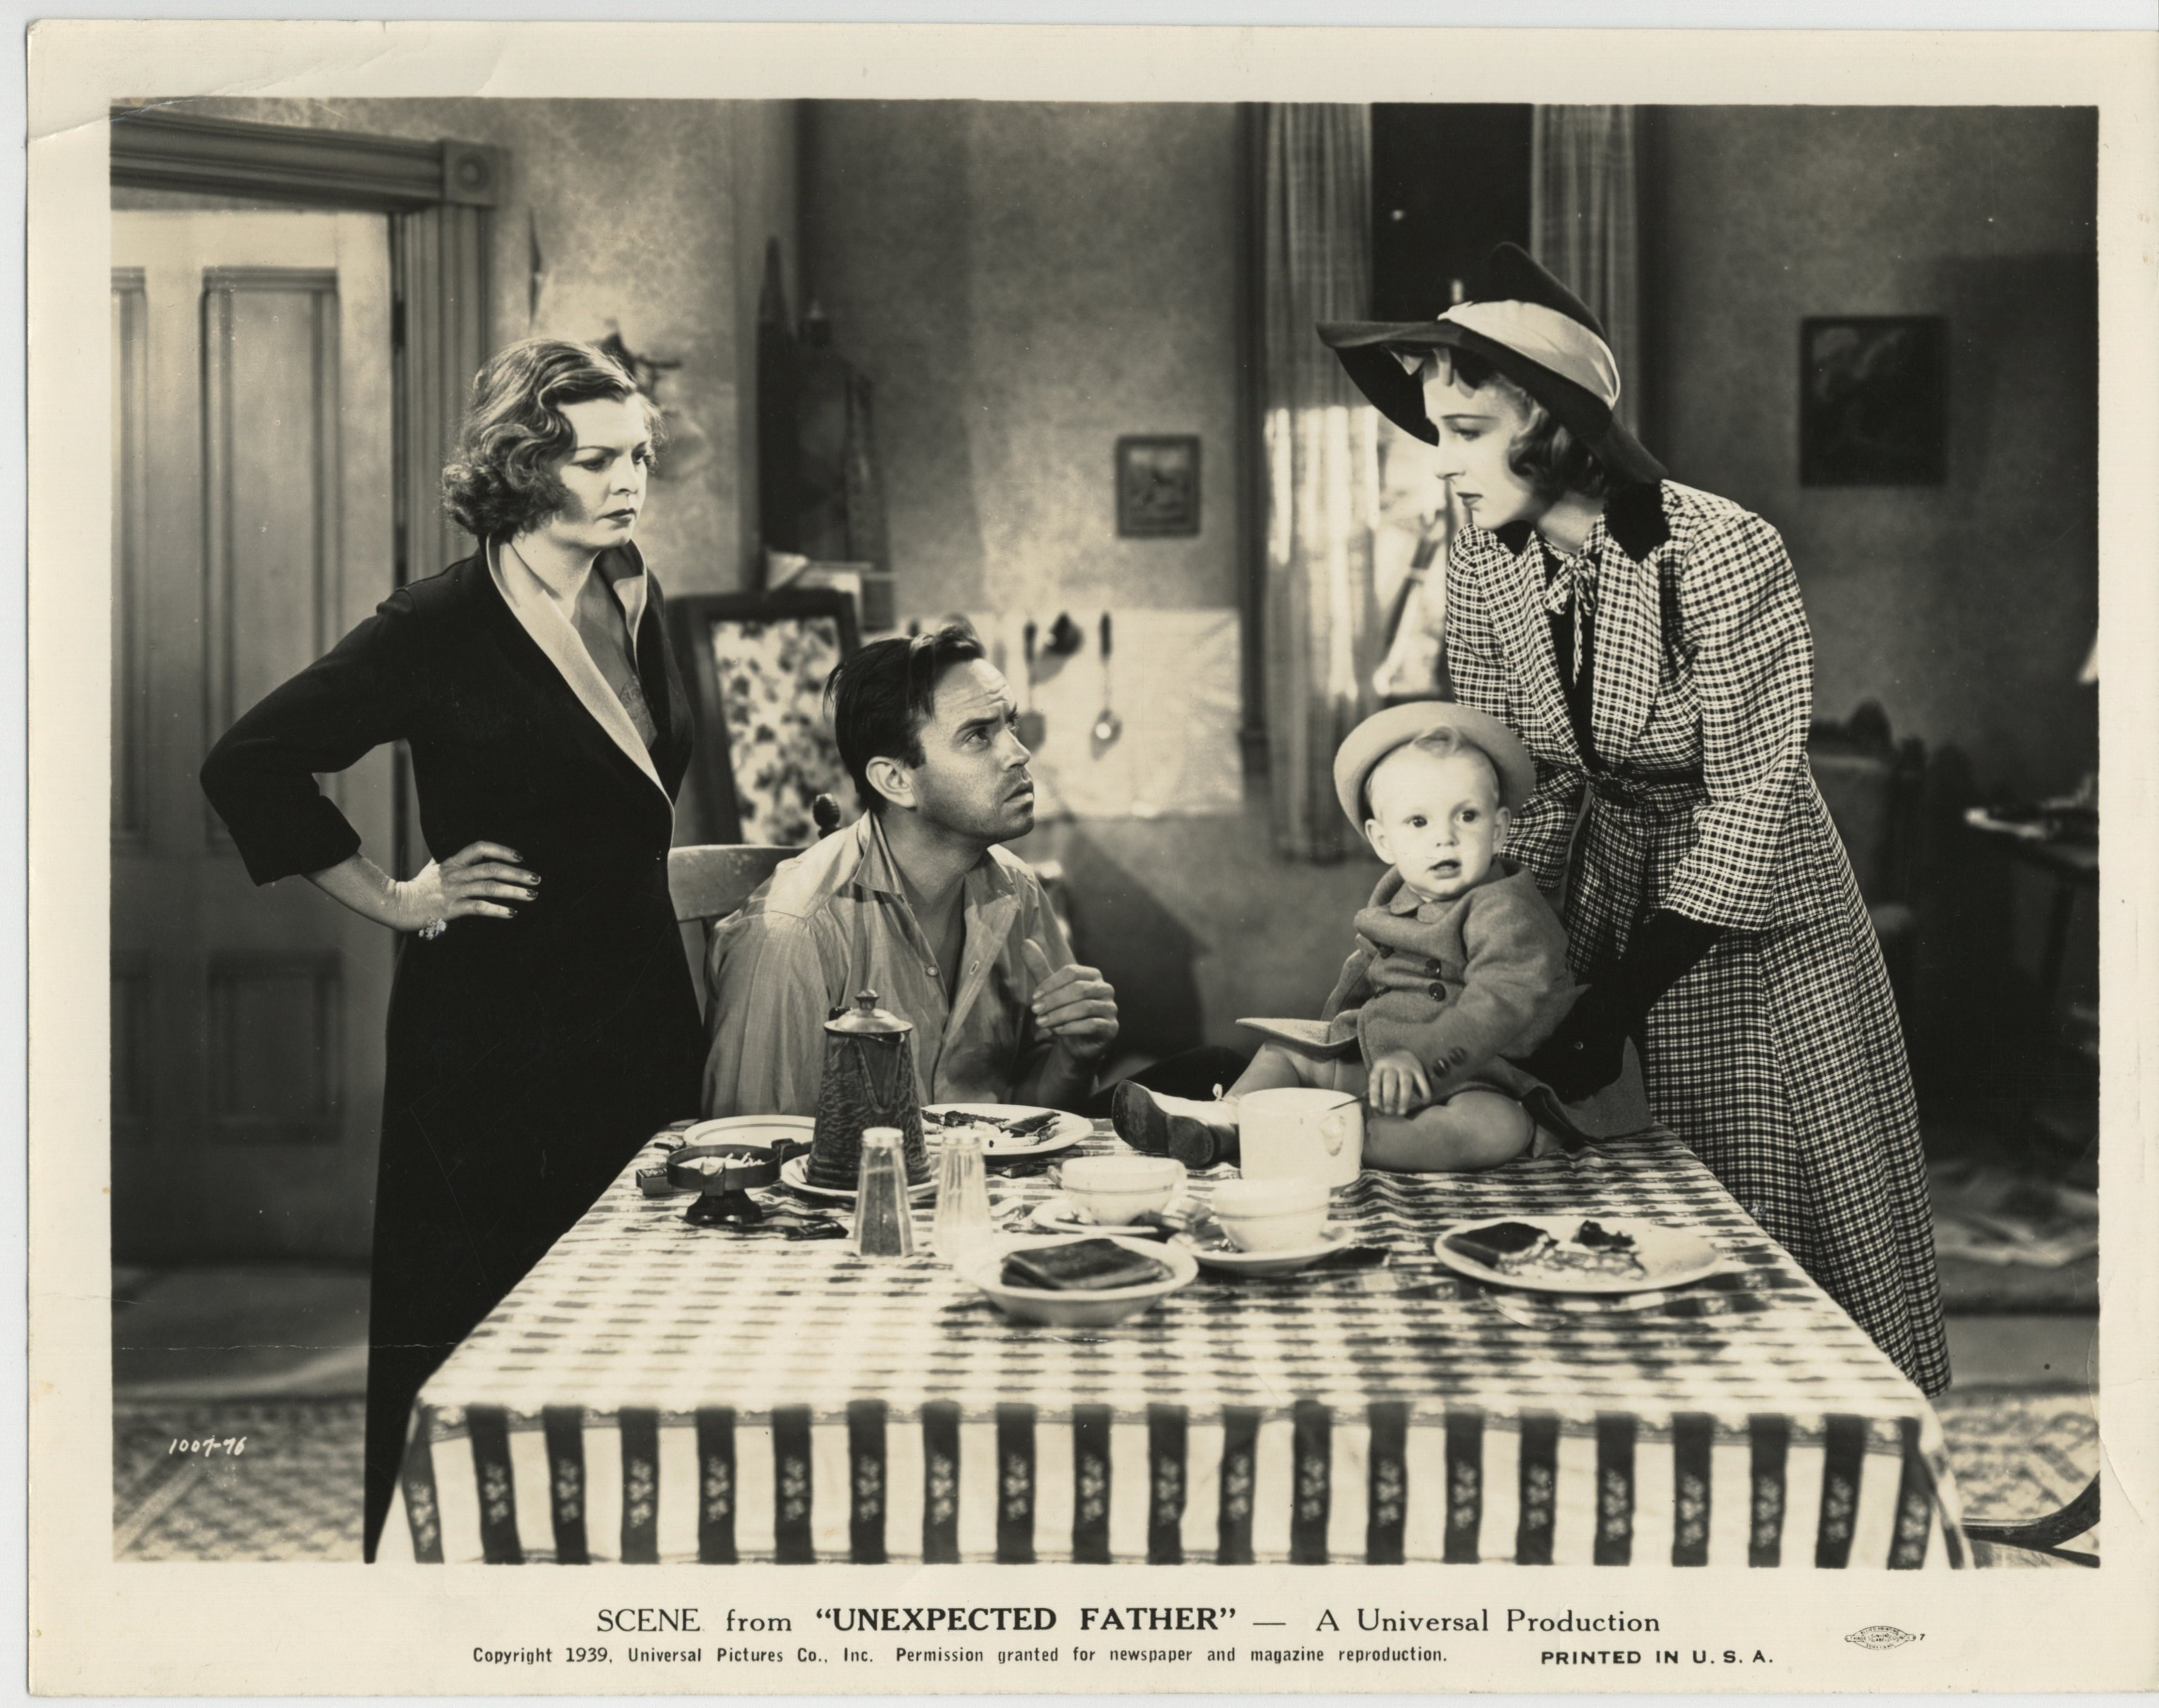 Paul Guilfoyle, Baby Sandy, Mayo Methot, and Shirley Ross in Unexpected Father (1939)